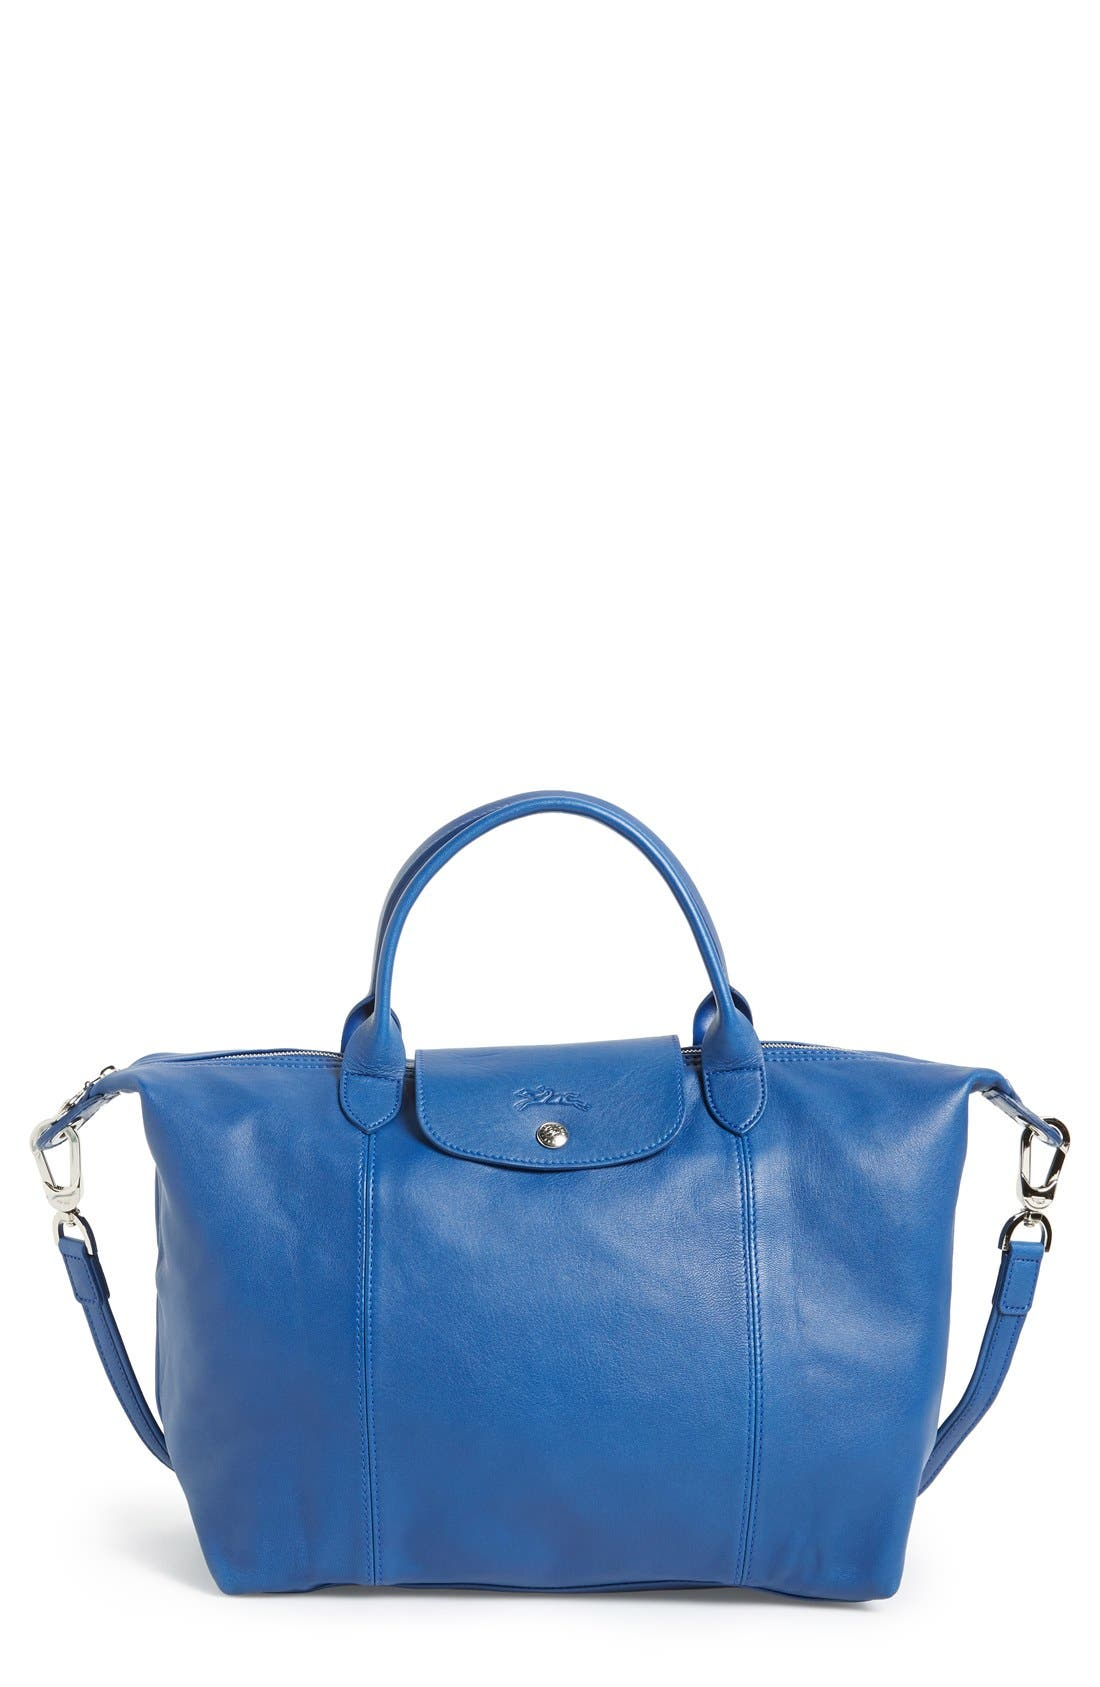 Medium 'Le Pliage Cuir' Leather Top Handle Tote,                             Main thumbnail 16, color,